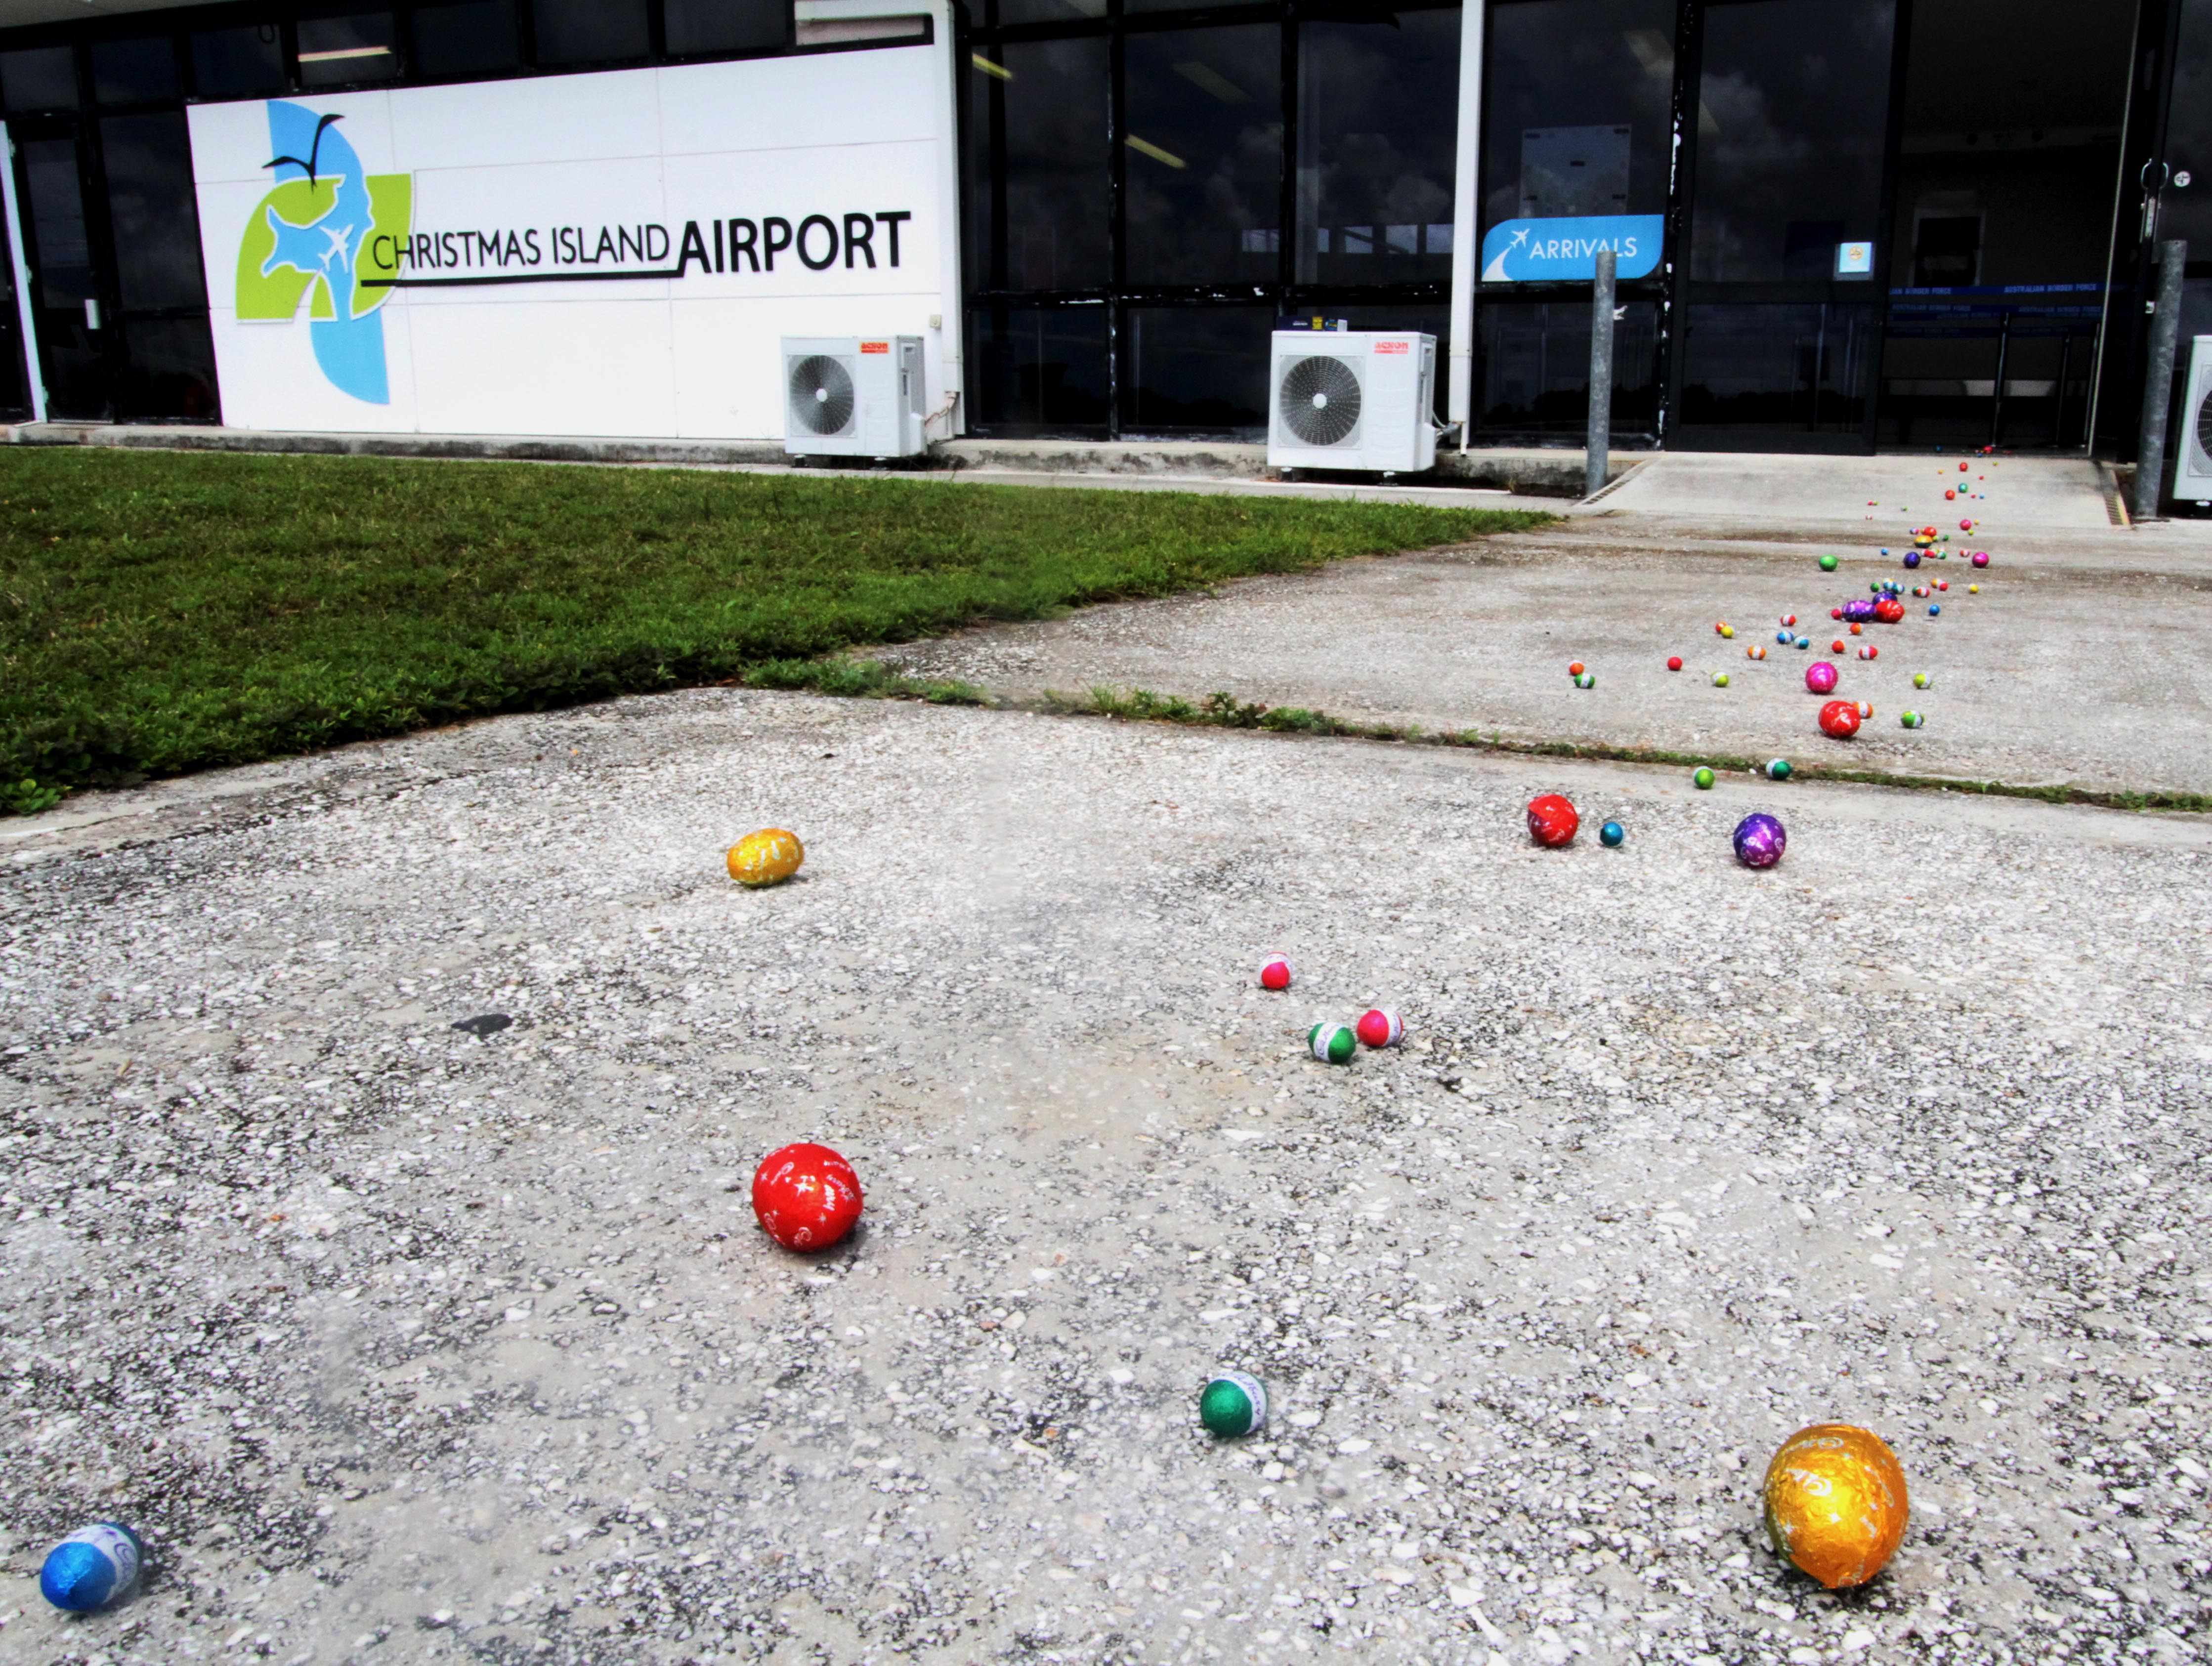 File:Easter Bunny stops by Christmas Island Airport.jpg - Wikimedia ...